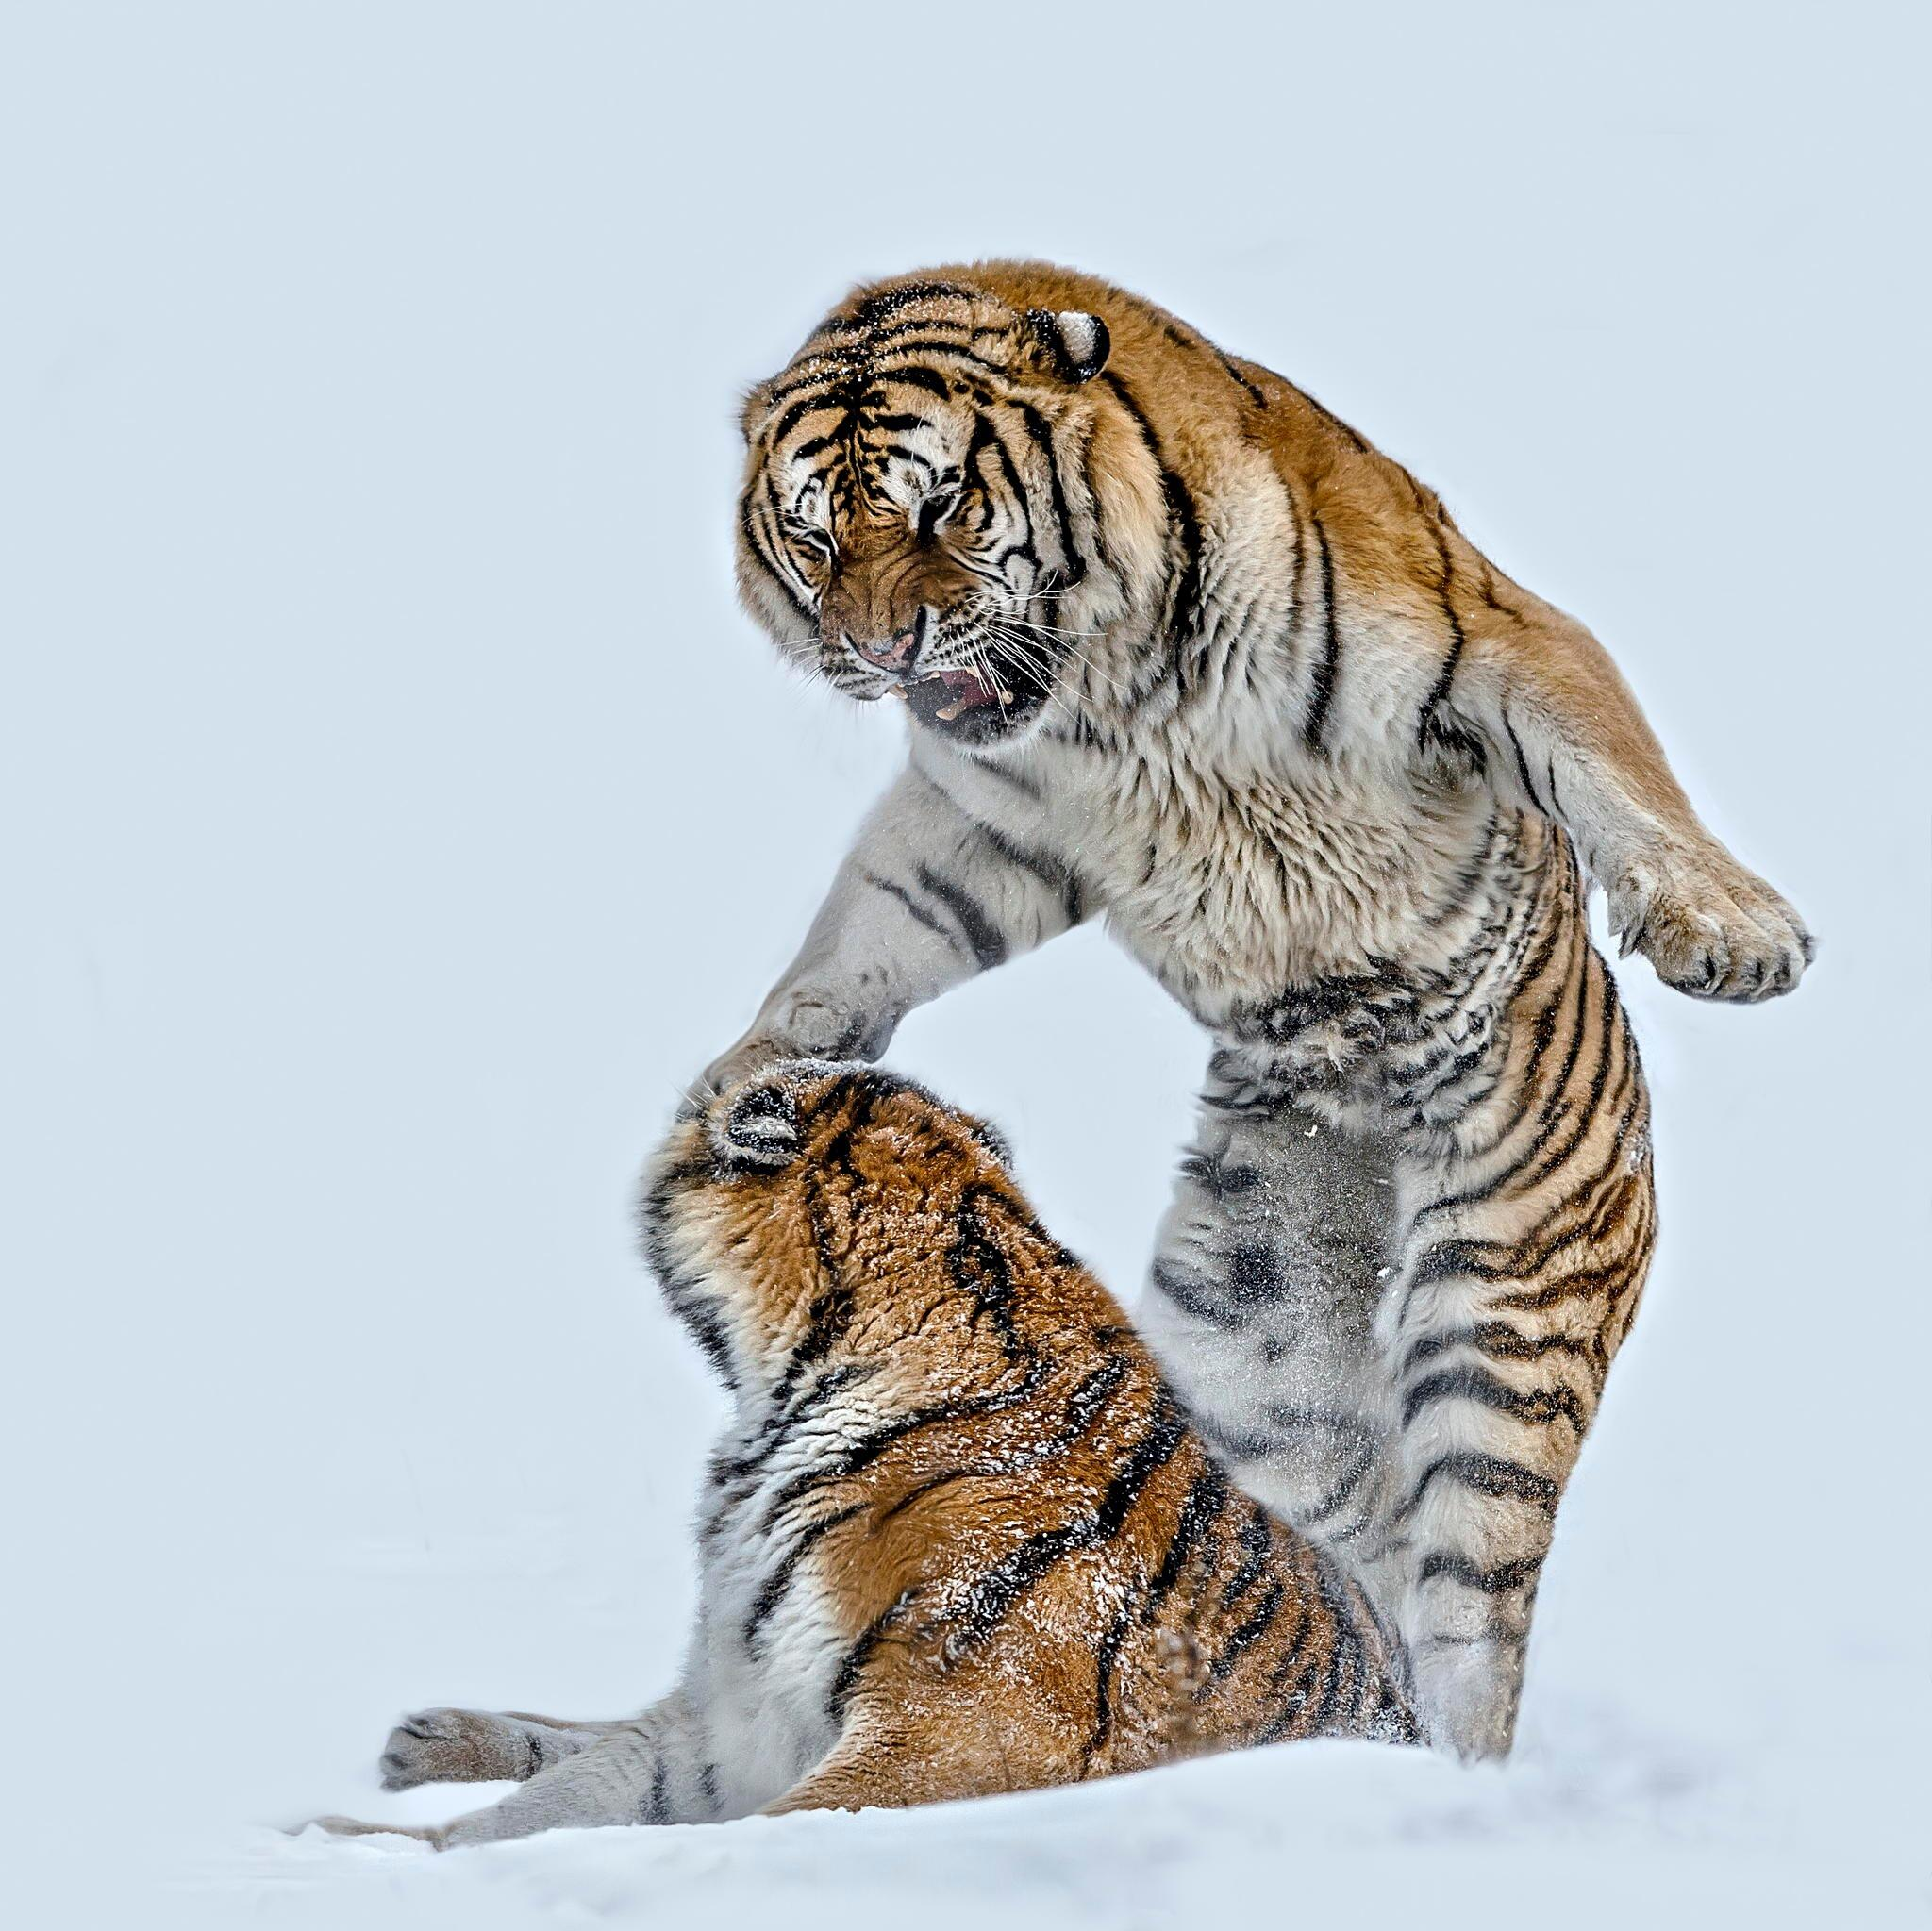 Twitter / zaibatsu: An awesome photo of Tigers ...